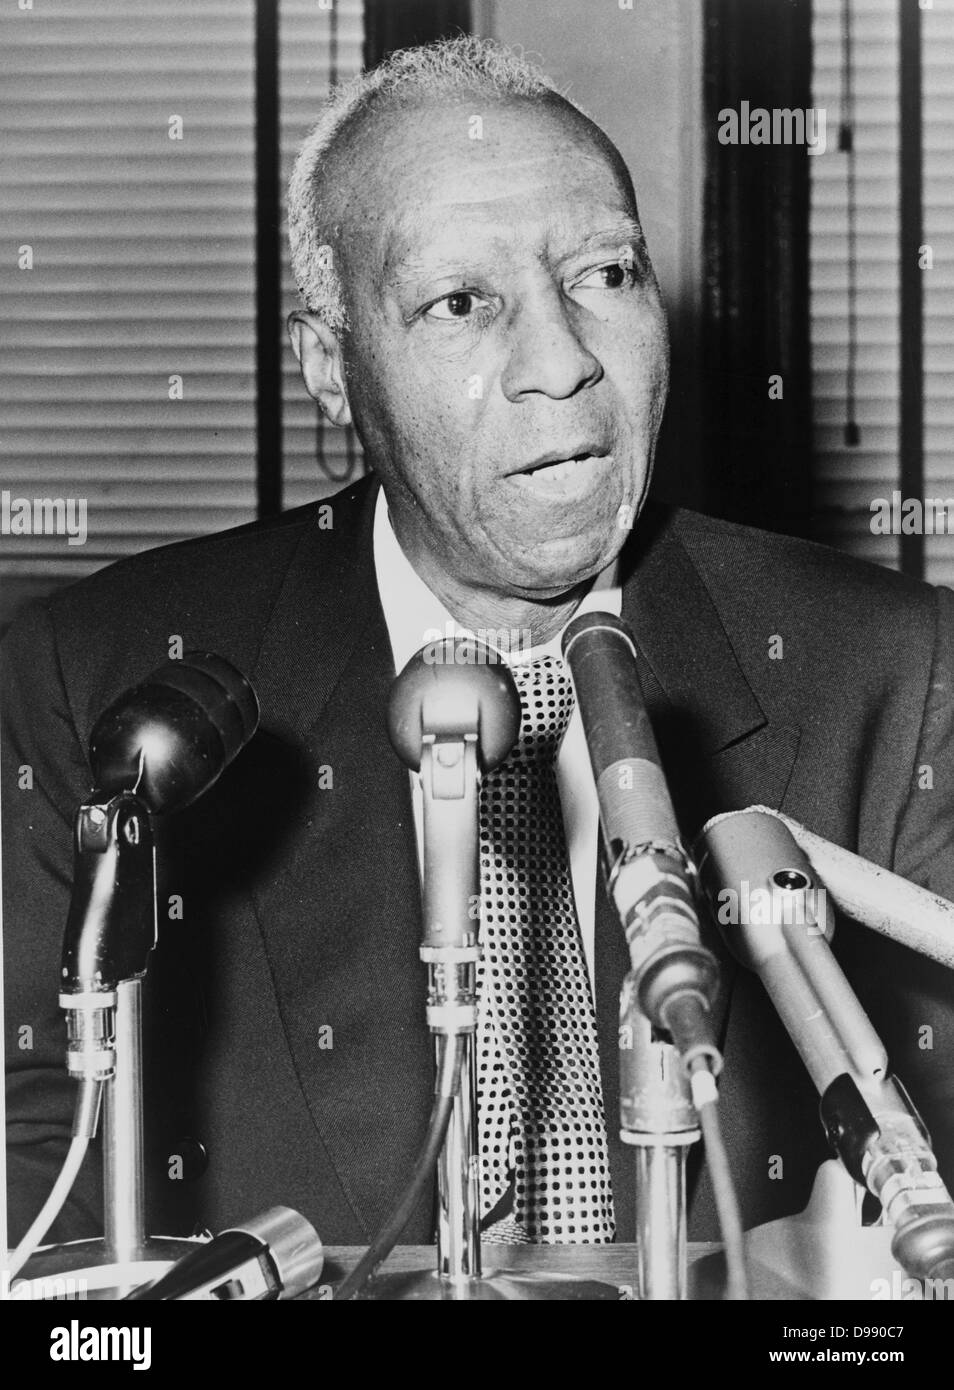 Asa Philip Randolph, half-length portrait, facing slightly right, behind microphones during a press interview / - Stock Image